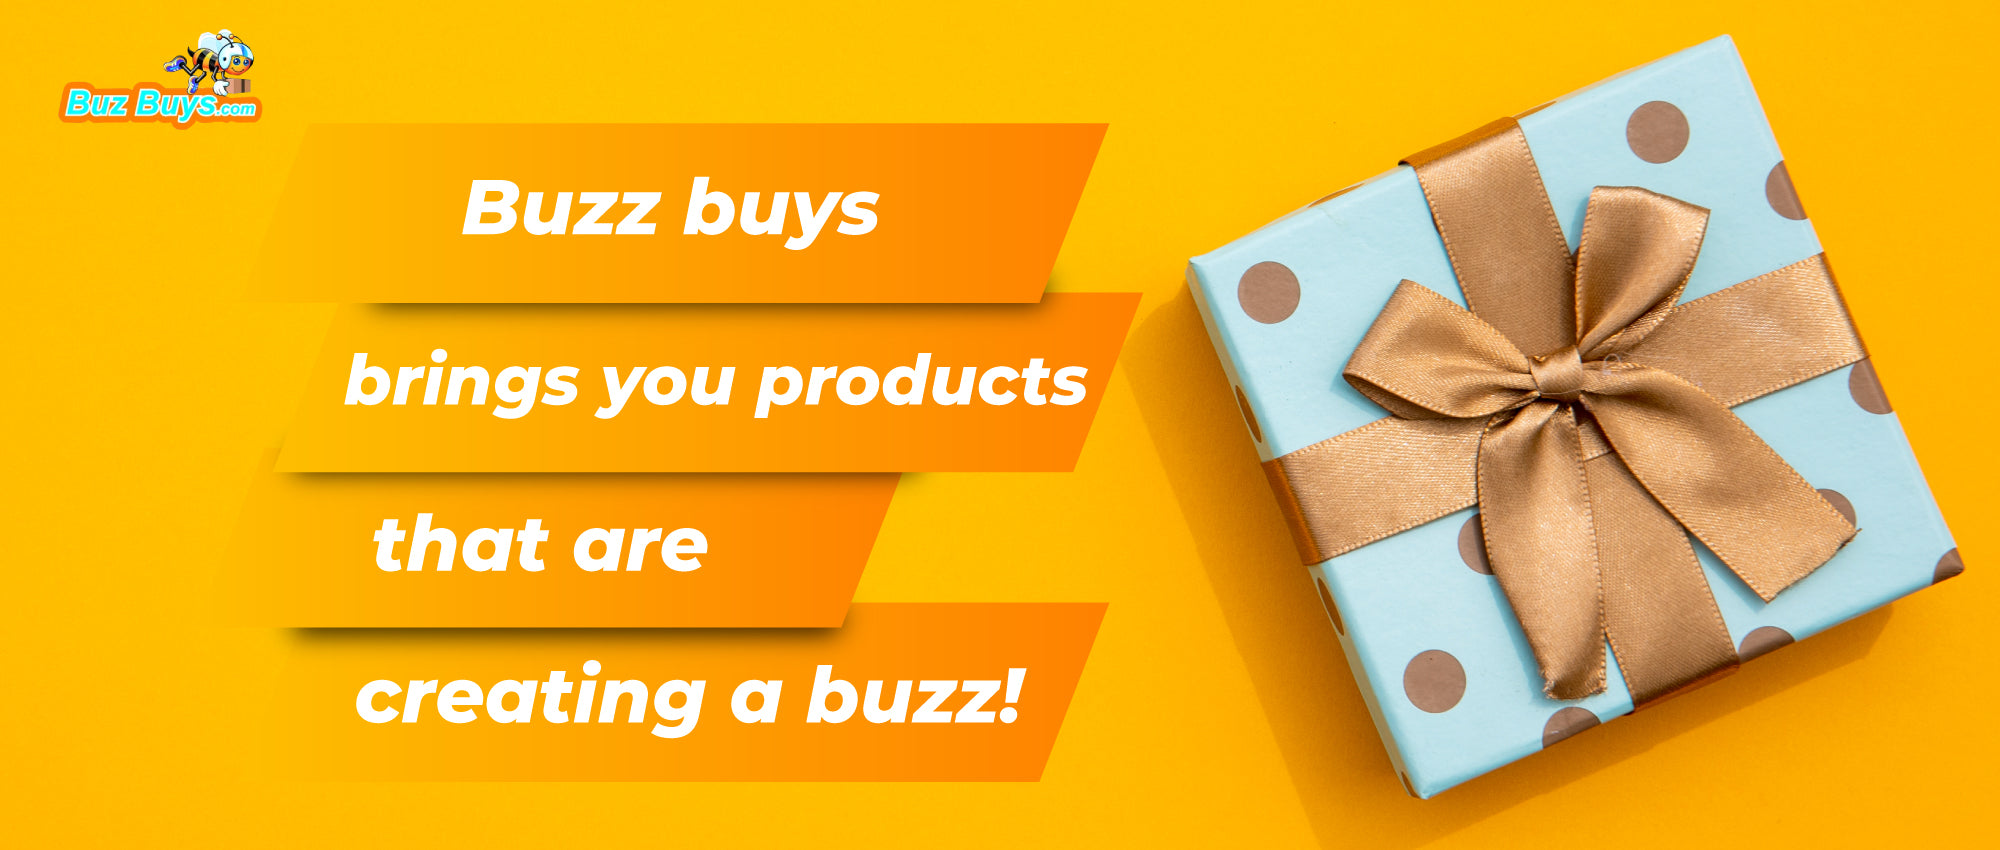 Buz buys brings you products that are creating a buzz!